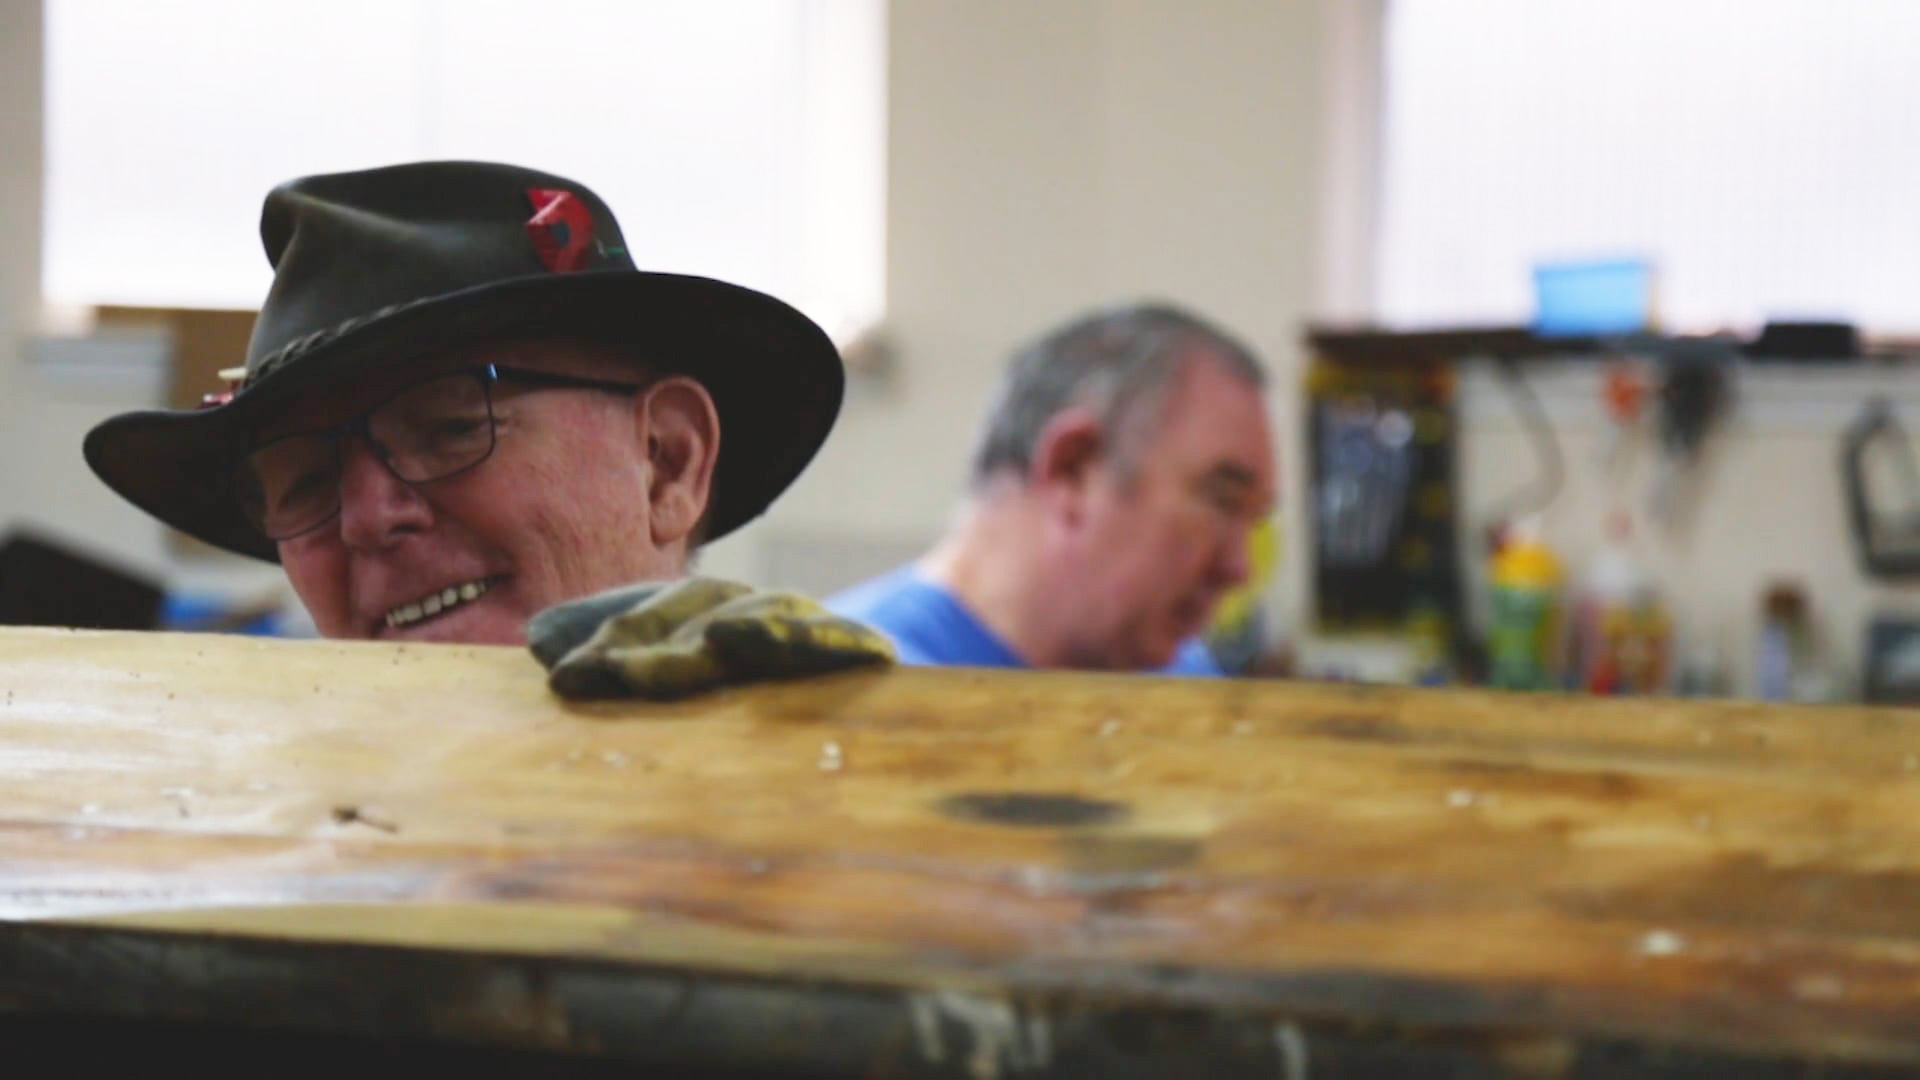 An older person in a hat smiles while working in a carpentry workshop